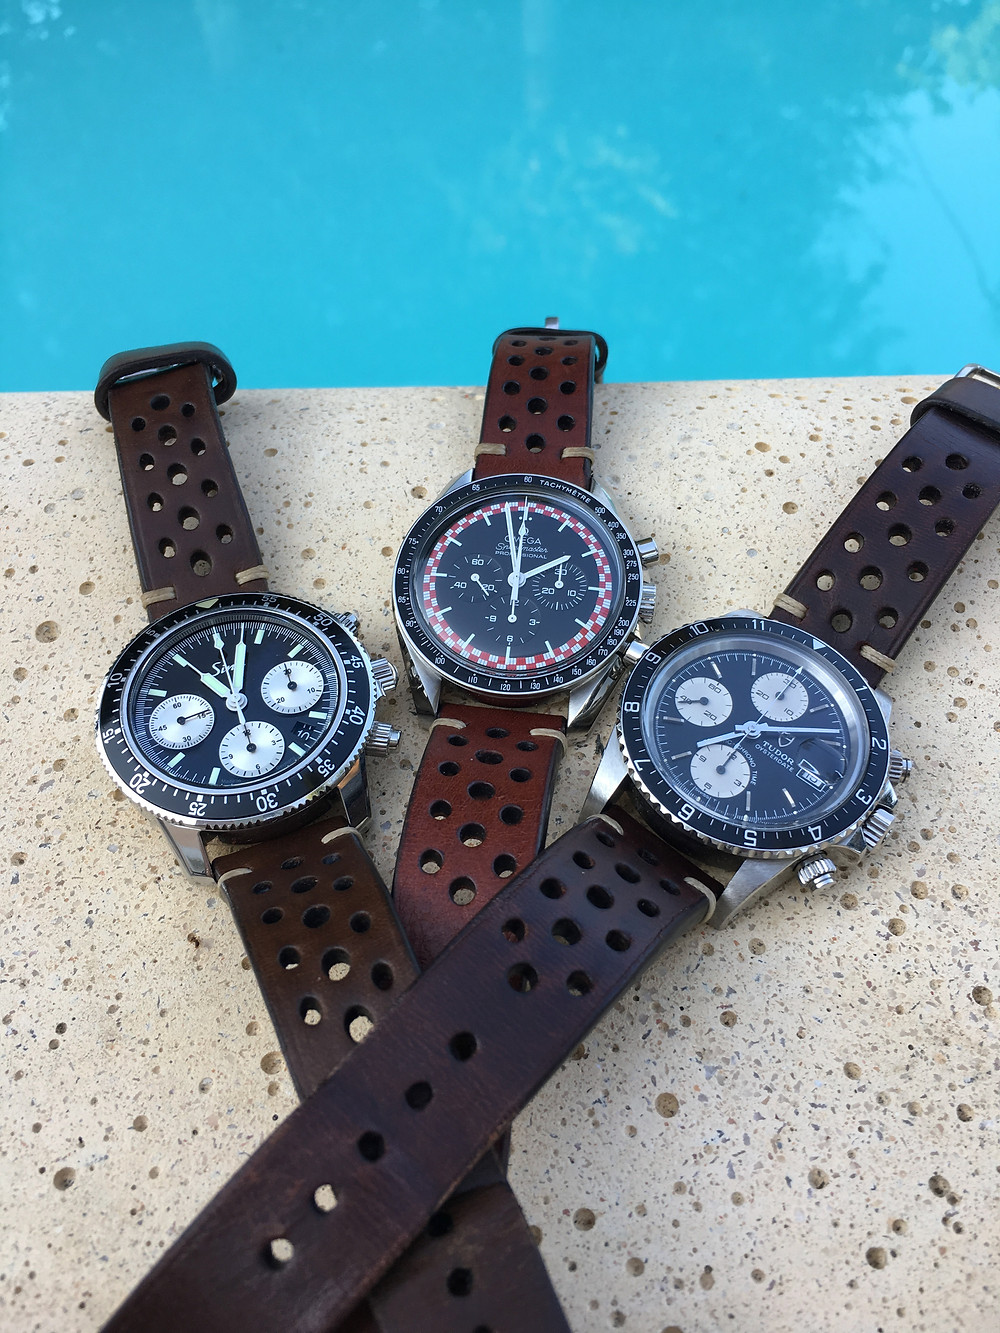 Sinn 103 Klassik, Speedmaster TinTin and Tudor Big Block